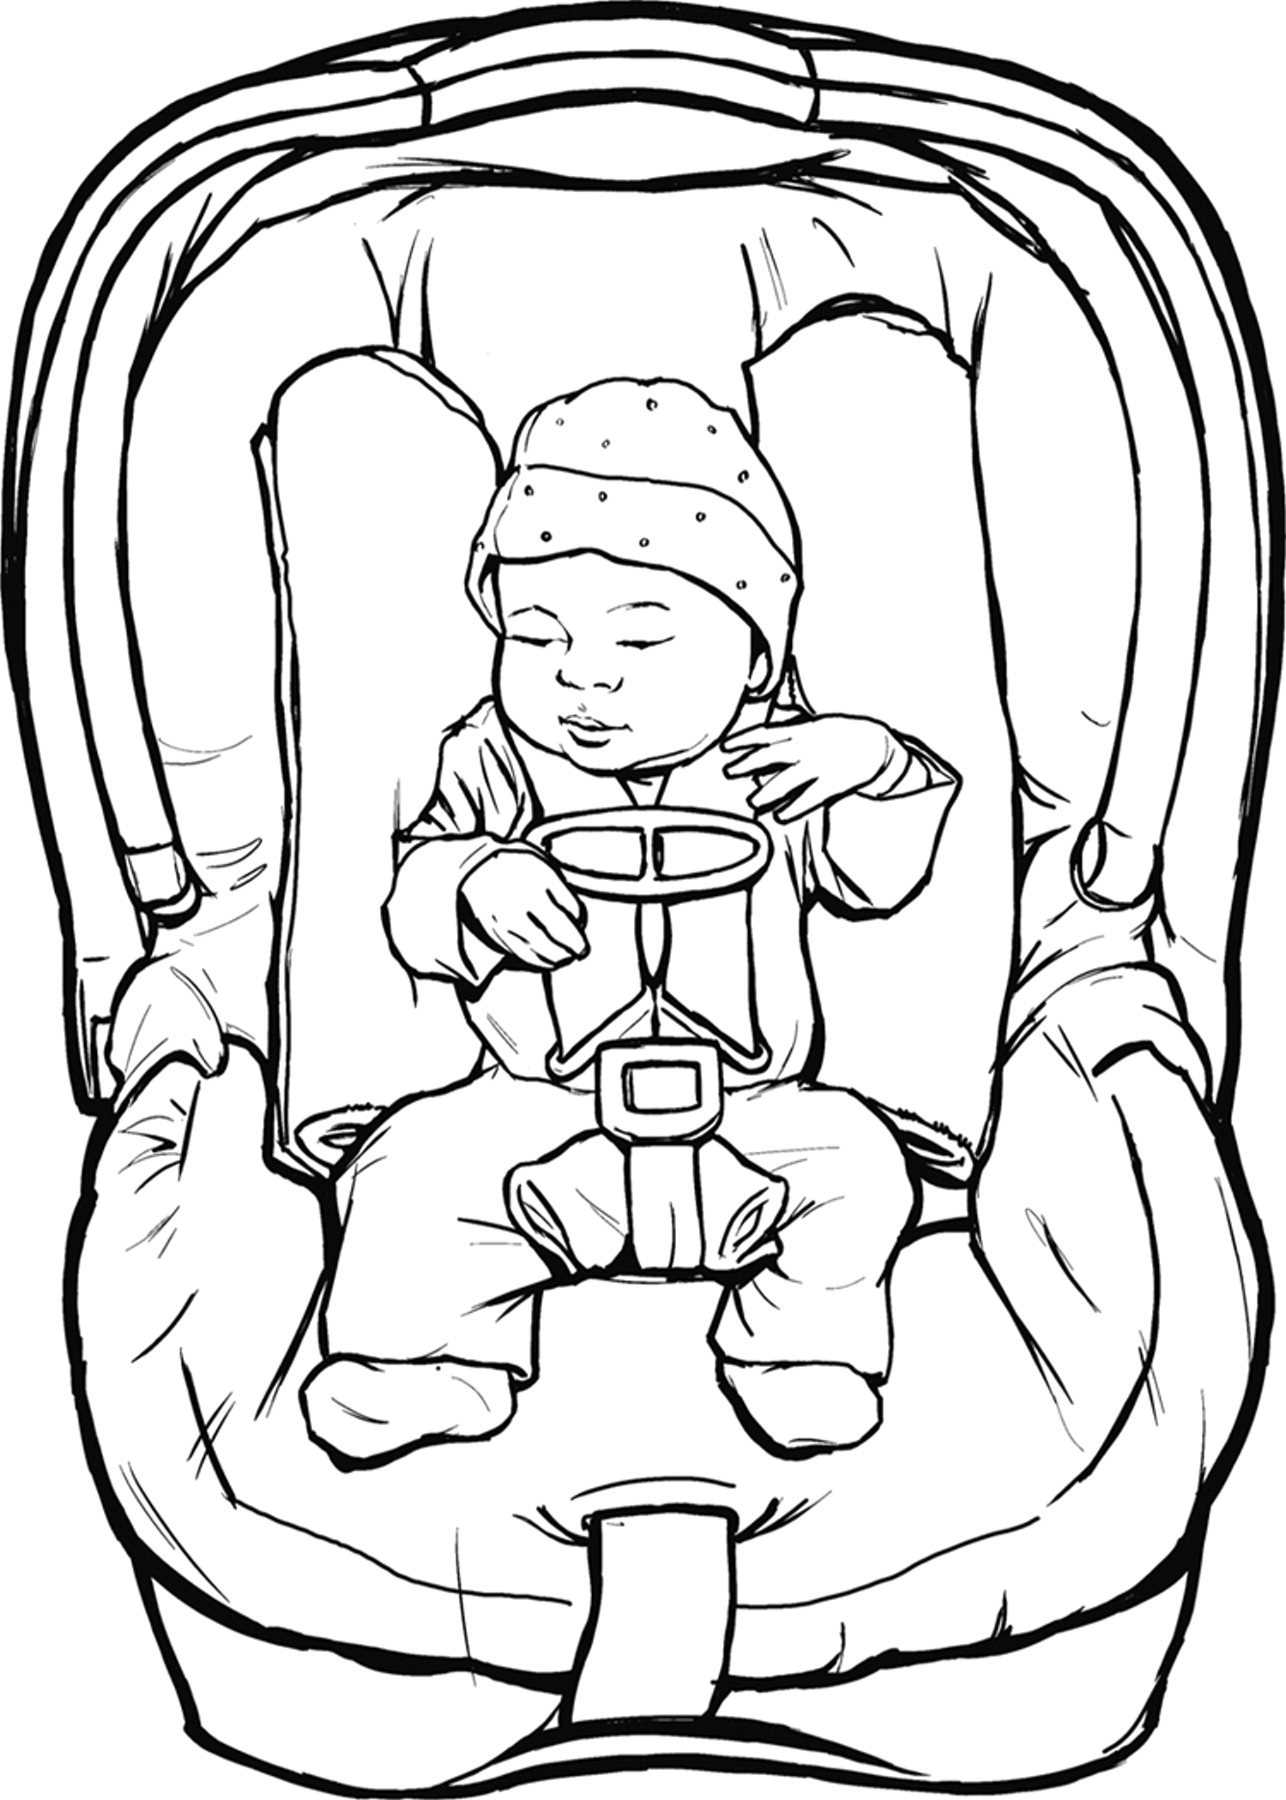 Newborn at getdrawings com. Infant clipart baby drawing svg library library